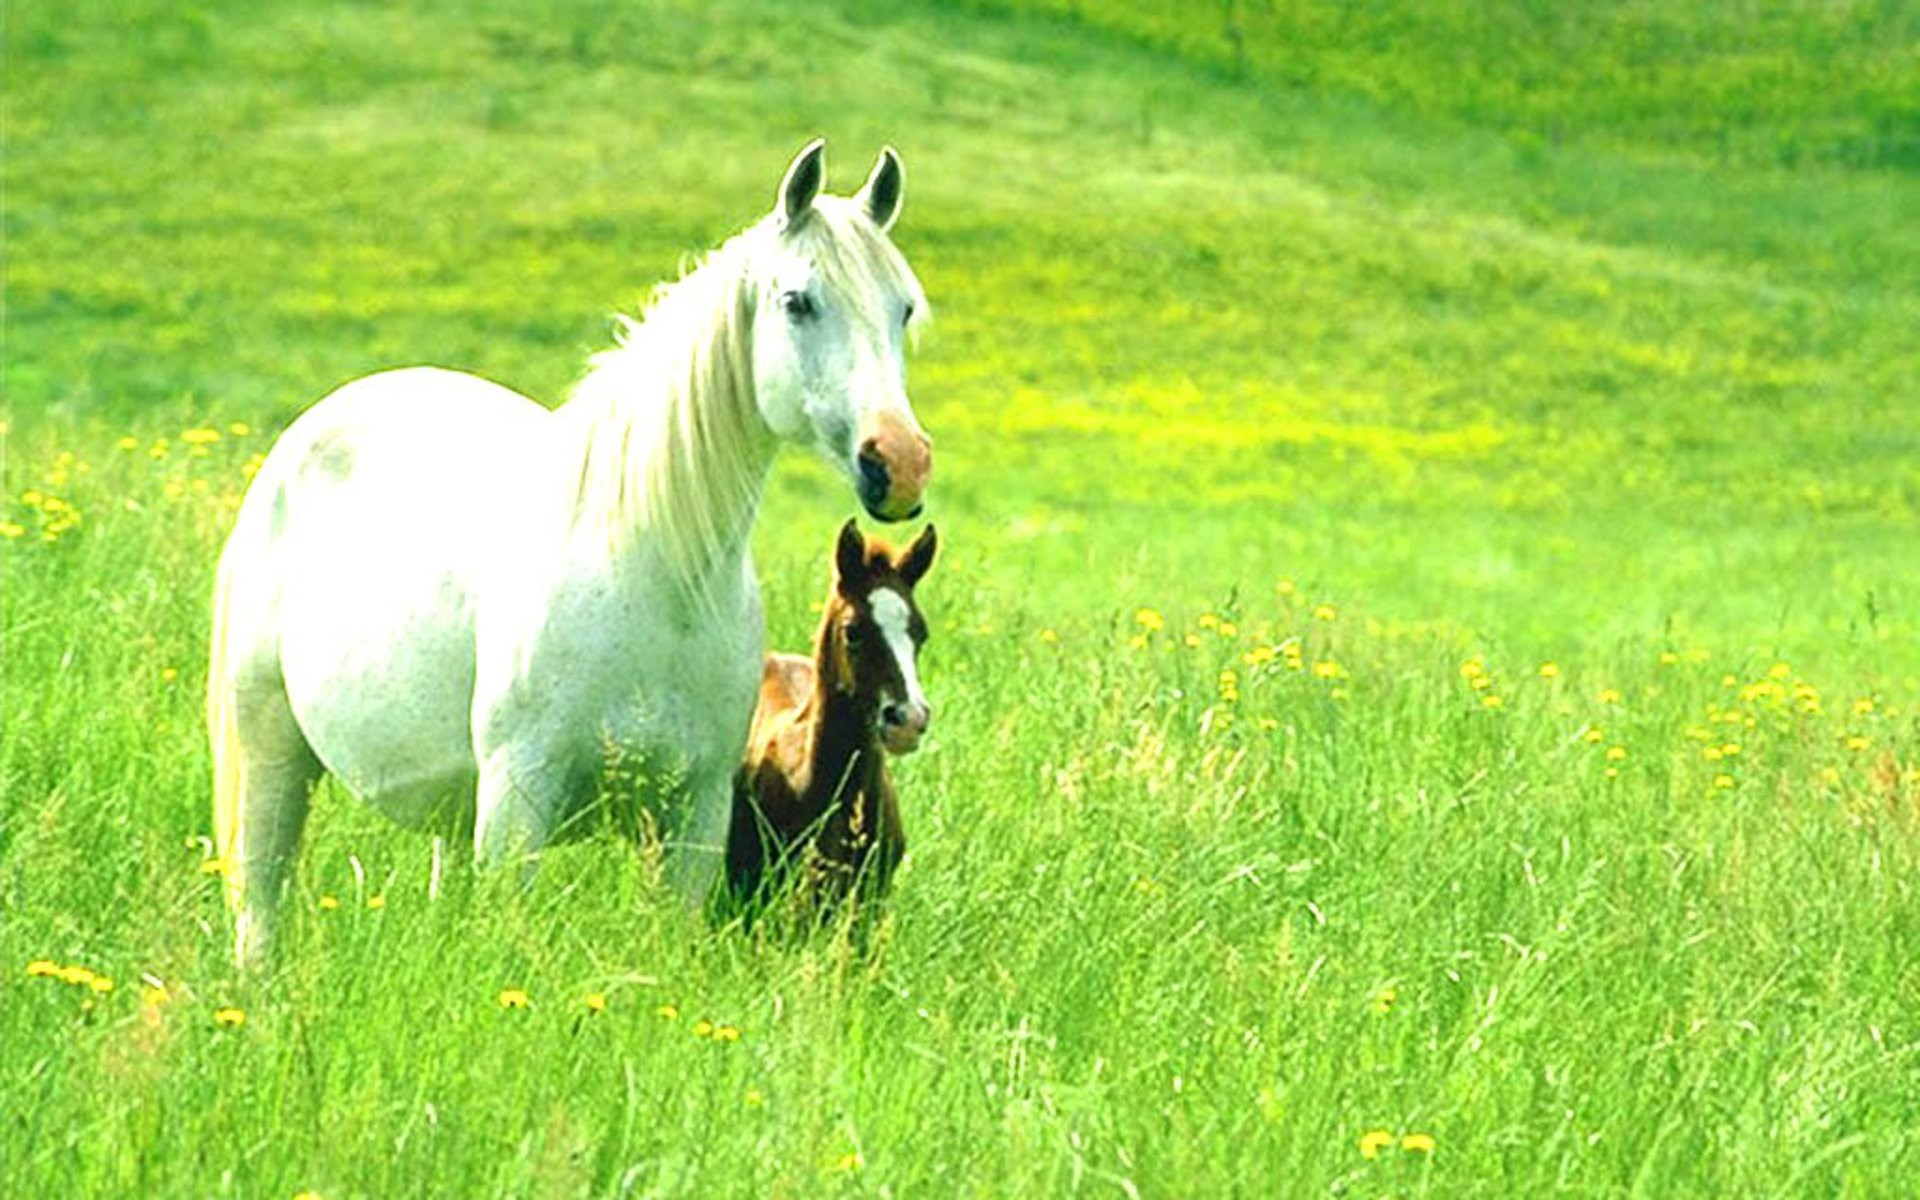 Animals. Horses and Ponies Wallpaper